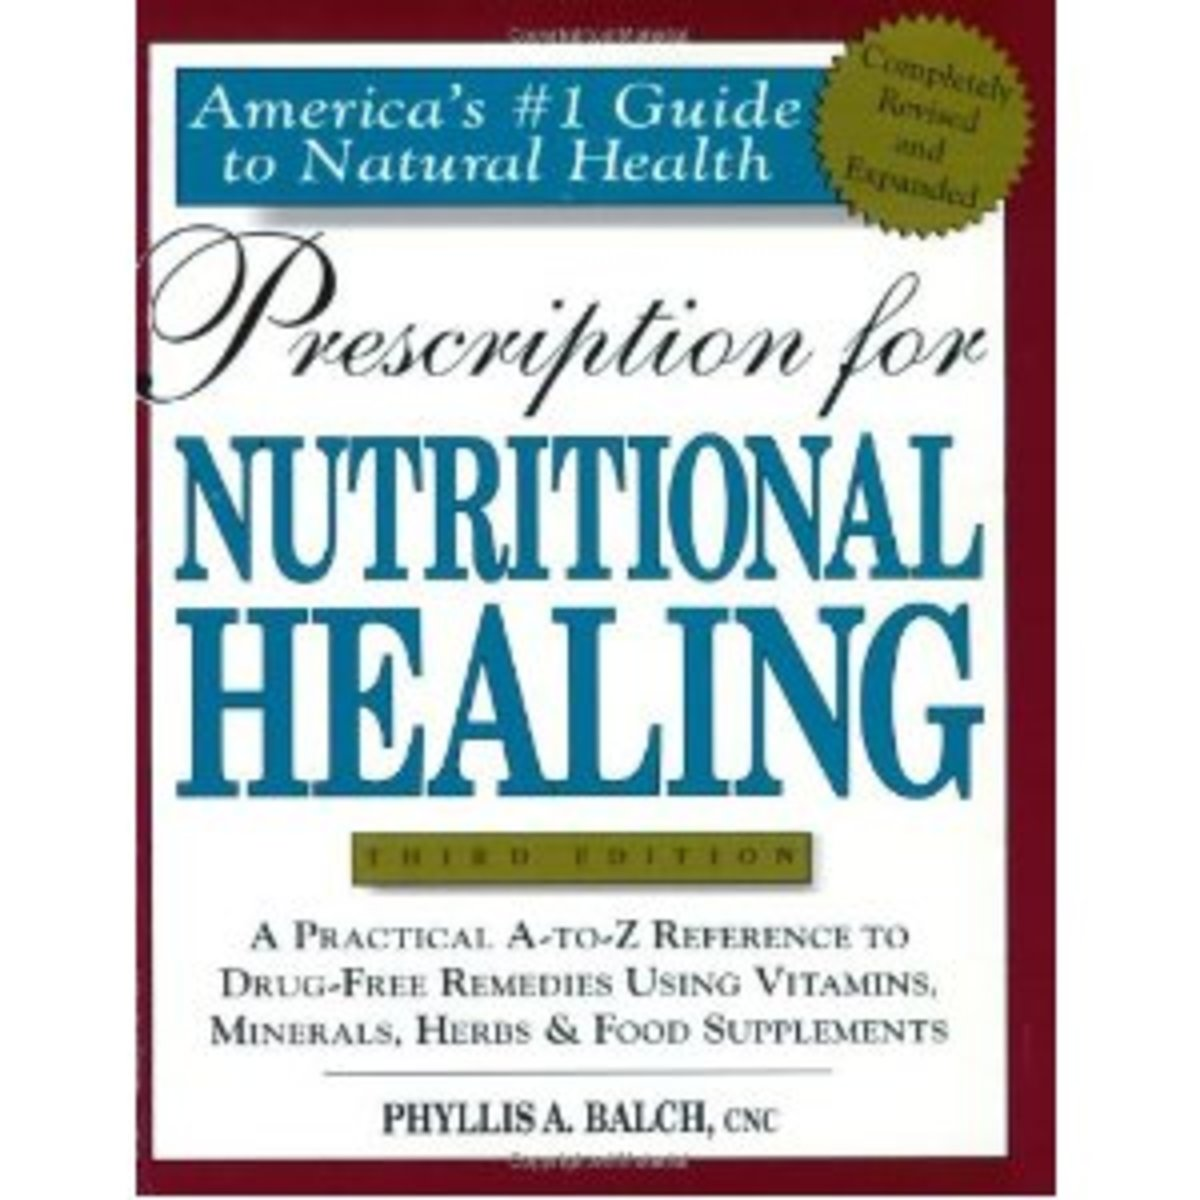 pic of Nutritional Healing book